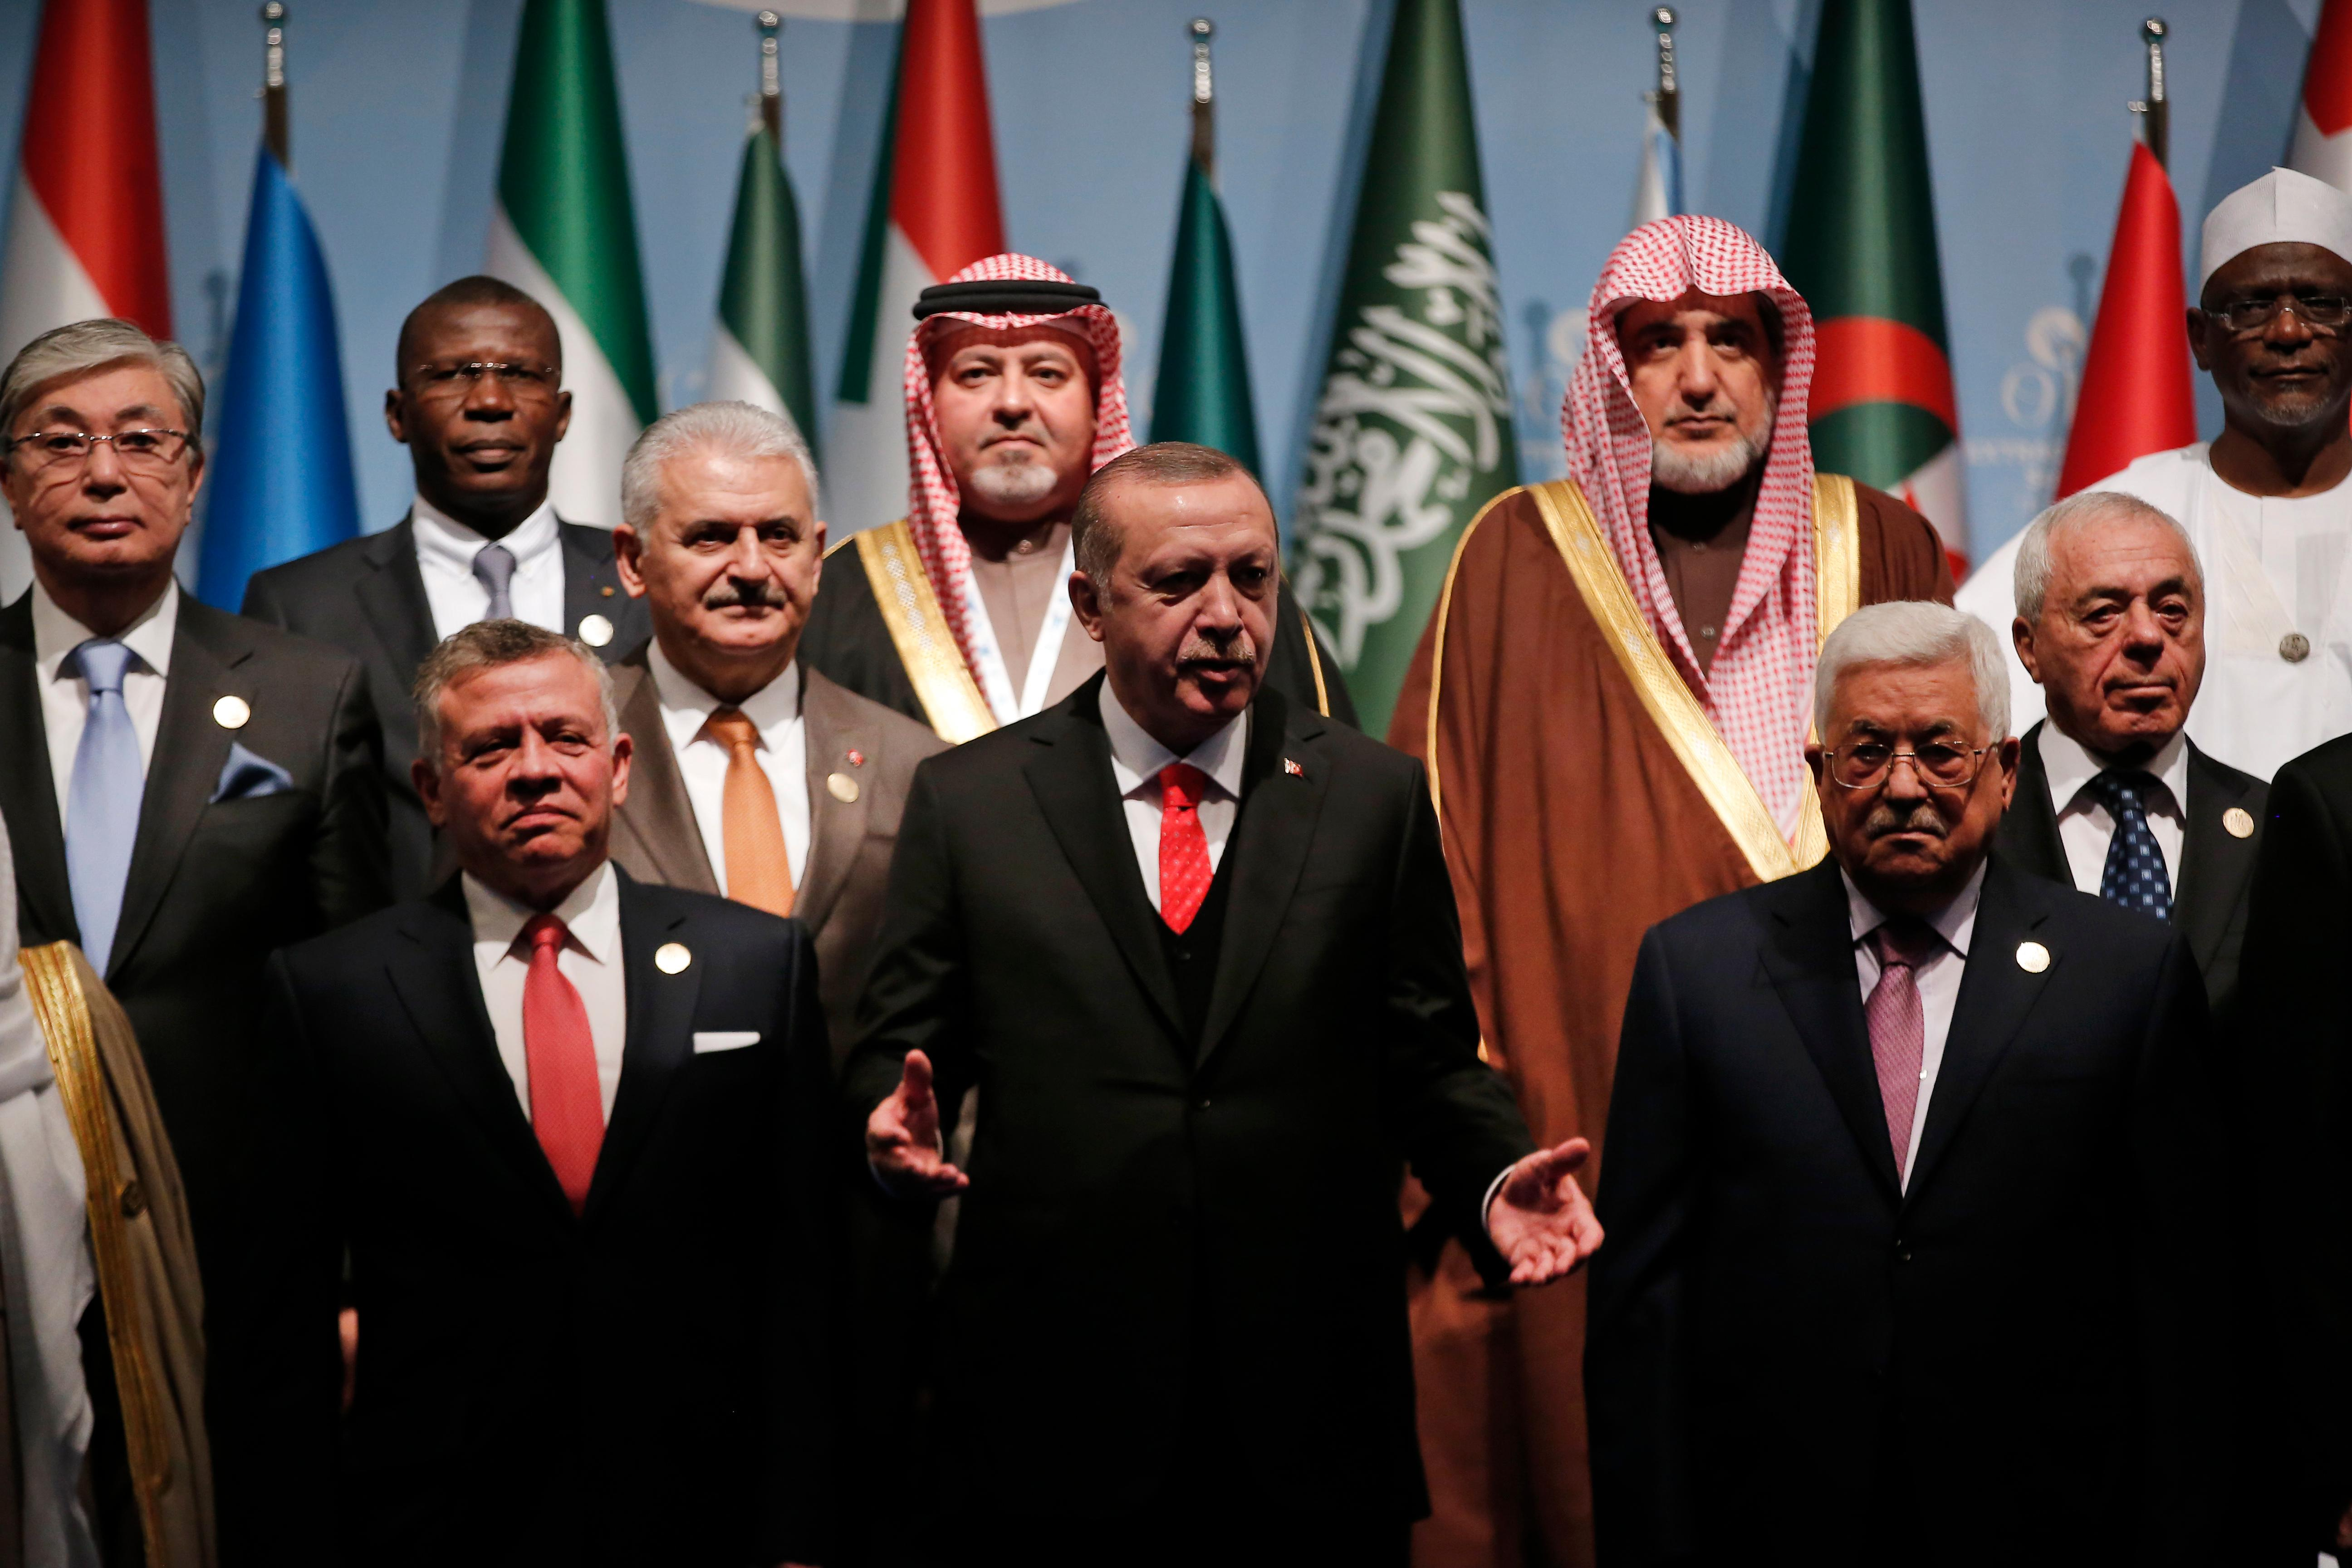 Turkey's President Recep Tayyip Erdogan, centre, flanked by Jordan's King Abdullah II, left and Palestinian President Mahmoud Abbas, right, gestures following a photo-op prior to the opening session of the Organisation of Islamic Cooperation Extraordinary Summit in Istanbul, Wednesday, Dec. 13, 2017 Leaders and top officials from Islamic nations, members of 57-member Organization of Islamic Cooperation gathered for a summit that is expected to forge a unified stance against U.S. President Donald Trump's recognition of Jerusalem as the capital of Israel. (AP Photo/Lefteris Pitarakis)